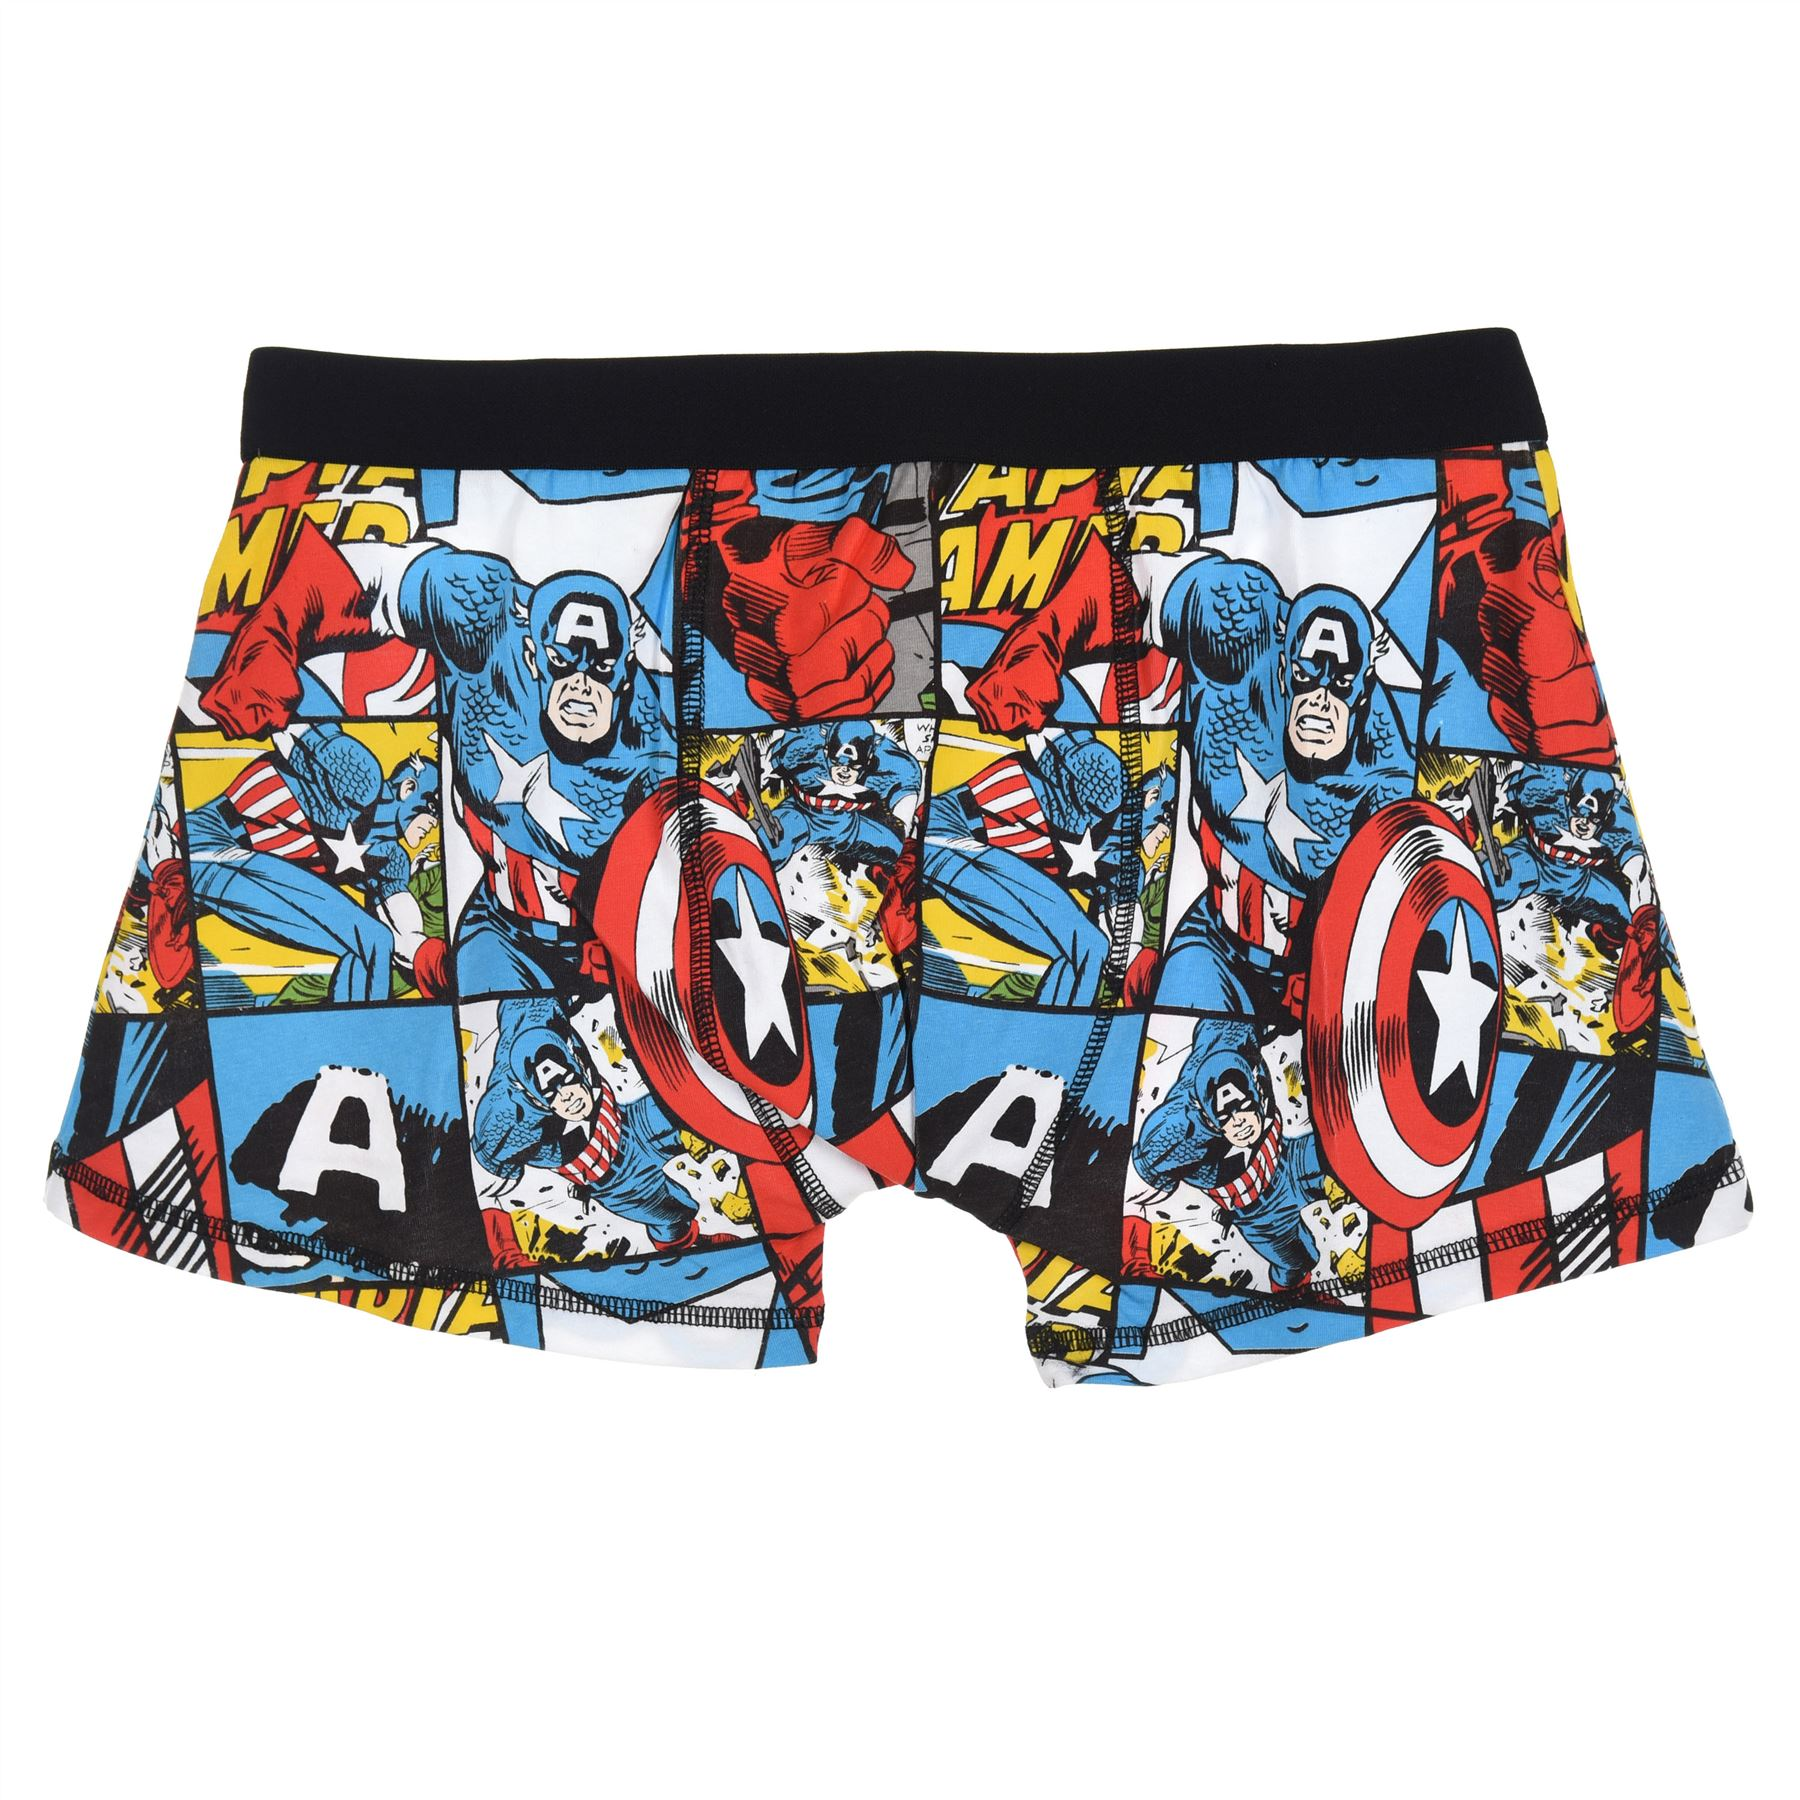 Mens-Official-Character-Trunks-Boxer-Shorts-Boxers-Underwear-2-Pack-Size-S-XL thumbnail 18